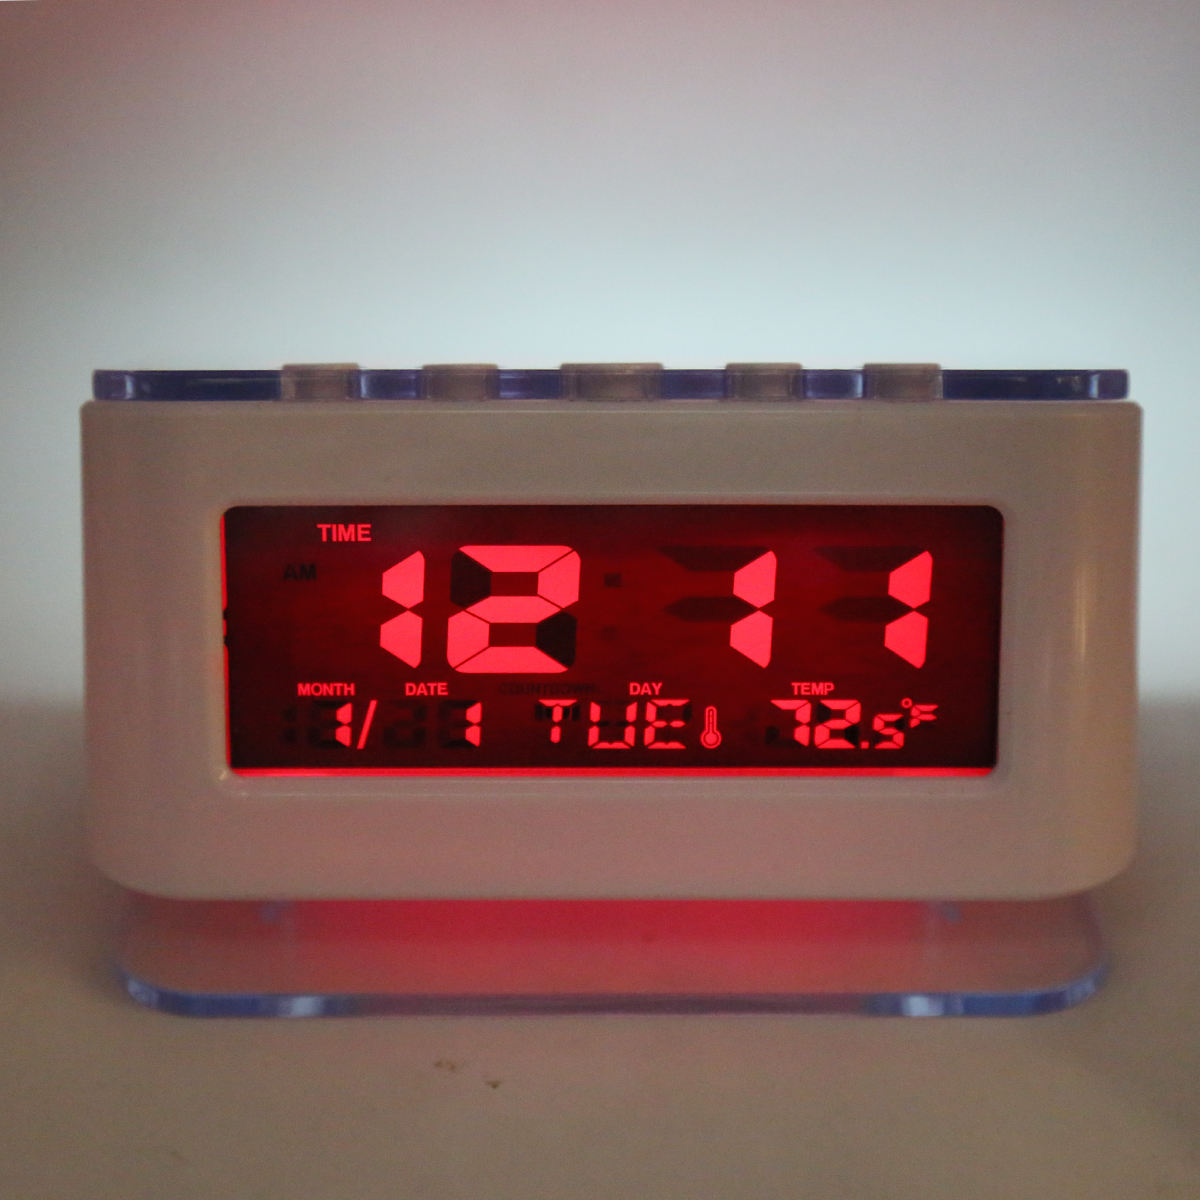 Smart Multifunction LED Display Temperature Calendar Desk Alarm Clock Temperature Table Snooze Alarm Clock with Snooze Function